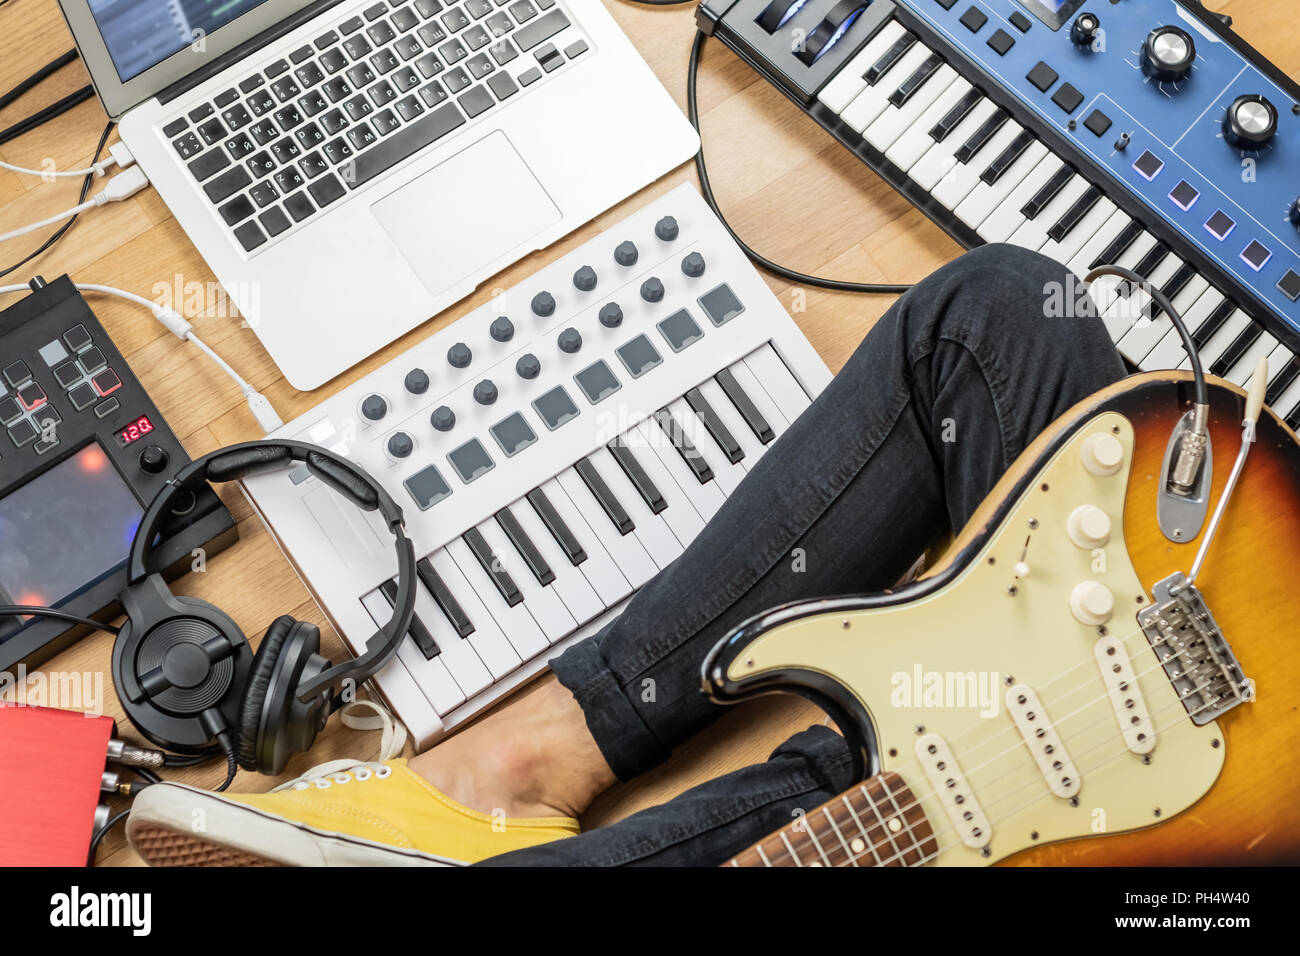 Male guitarist with electric guitar at modern home studio or rehearsal room. Young man producing music with electronic effects processors, synthesizer - Stock Image